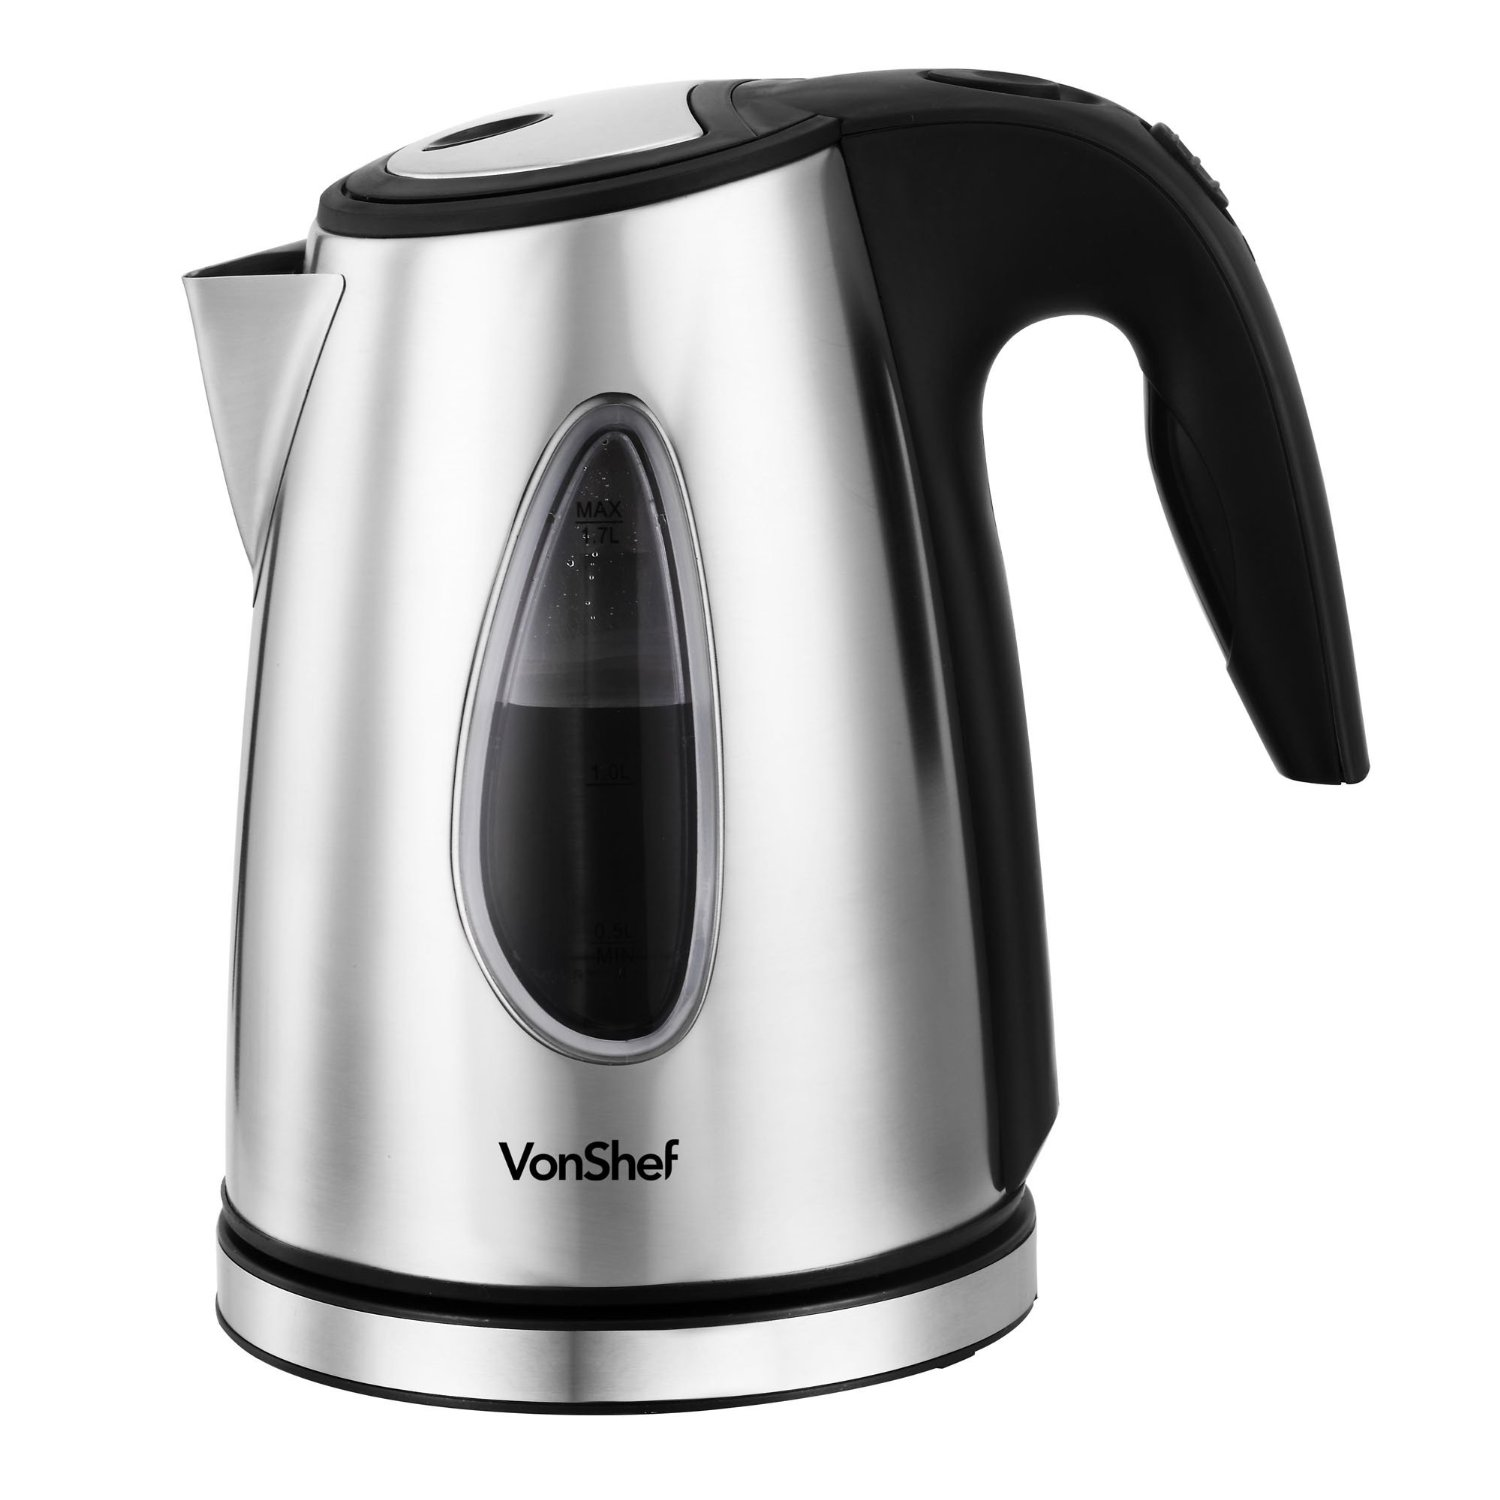 VonShef 1500 Watt Stainless Steel Cordless Kettle review